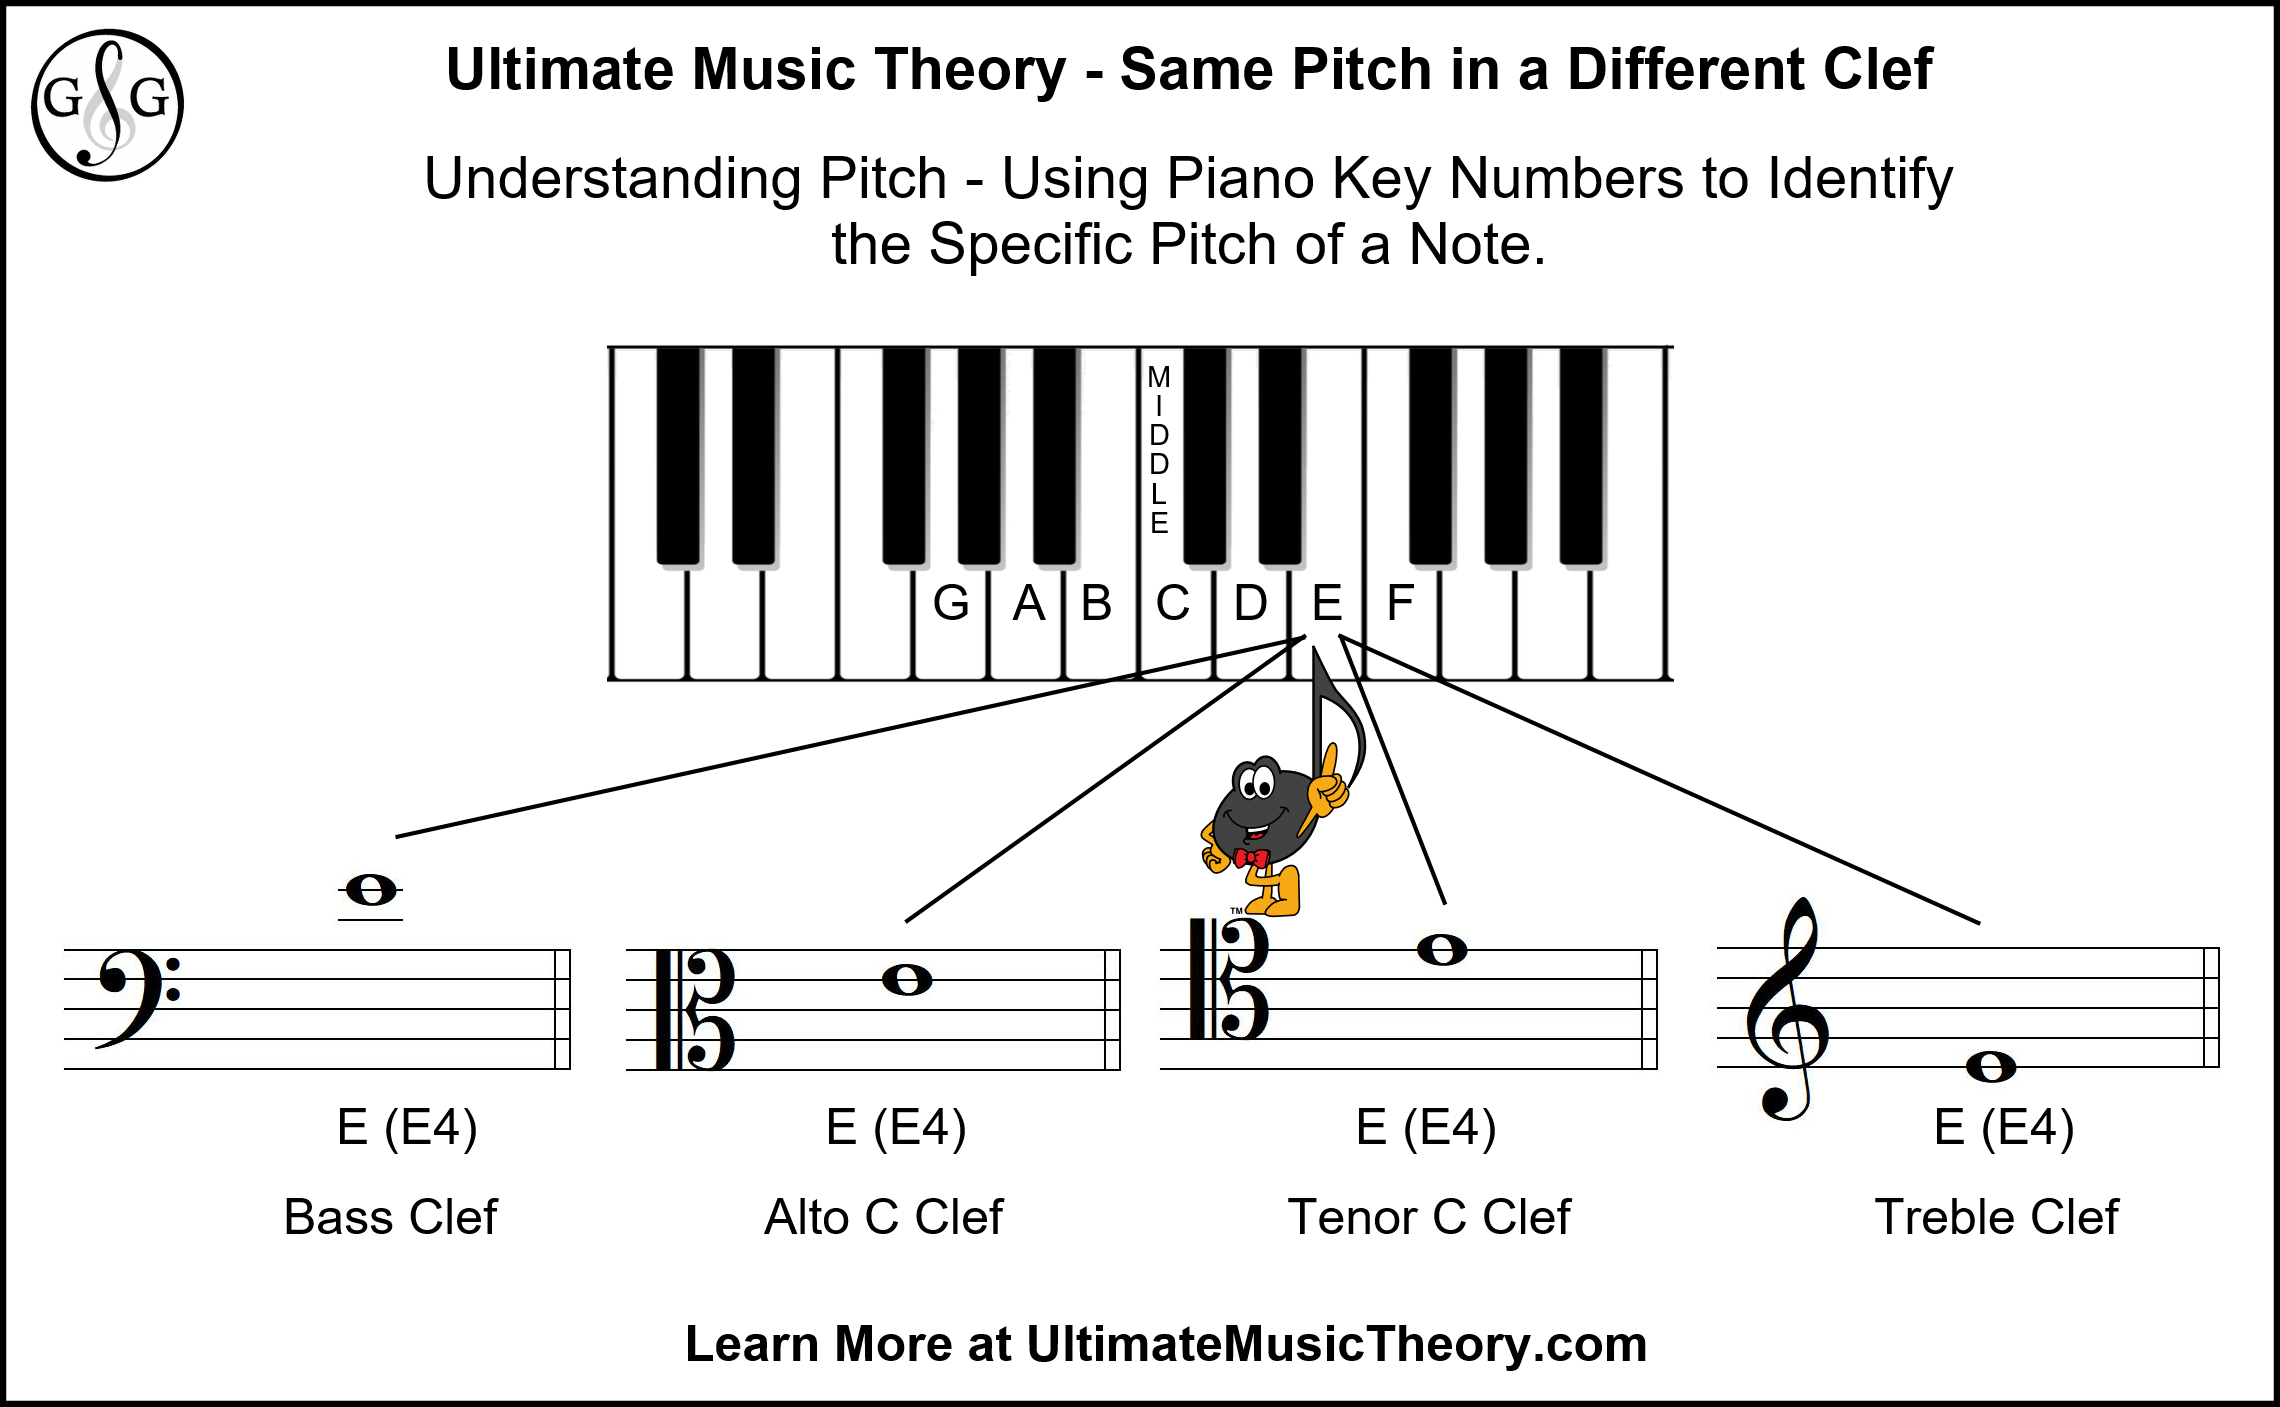 Ultimate Music Theory Same Pitch in a Different Clef - Same E